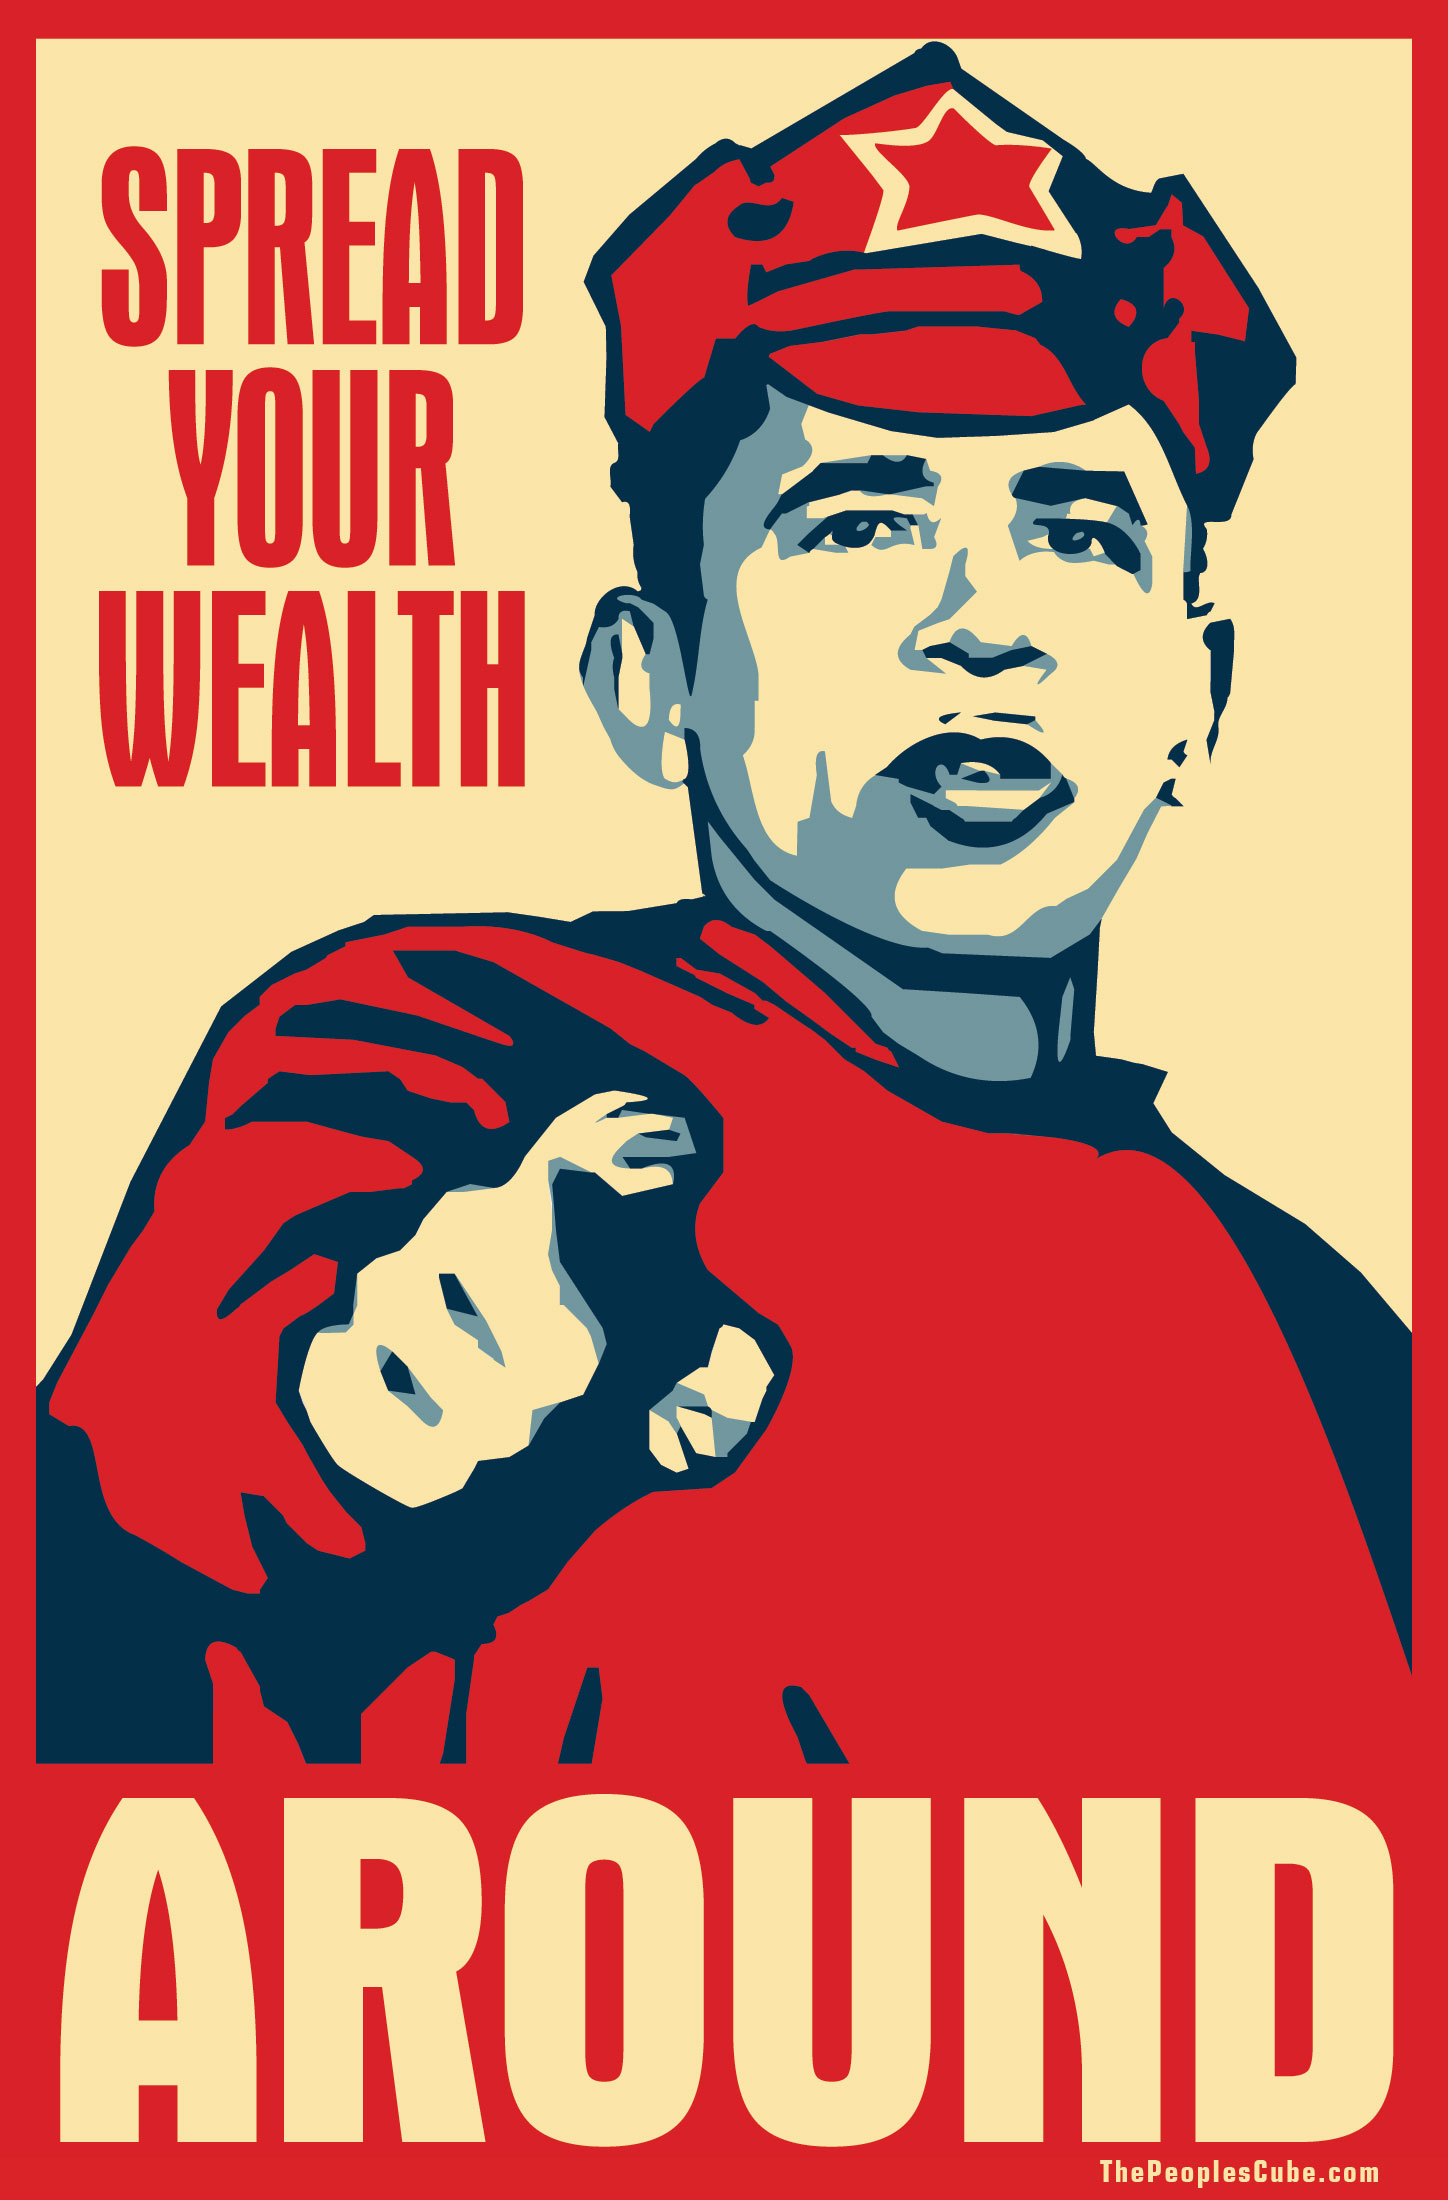 http://thepeoplescube.com/images/TeaParties/Obama_Spread_Your_Wealth.jpg